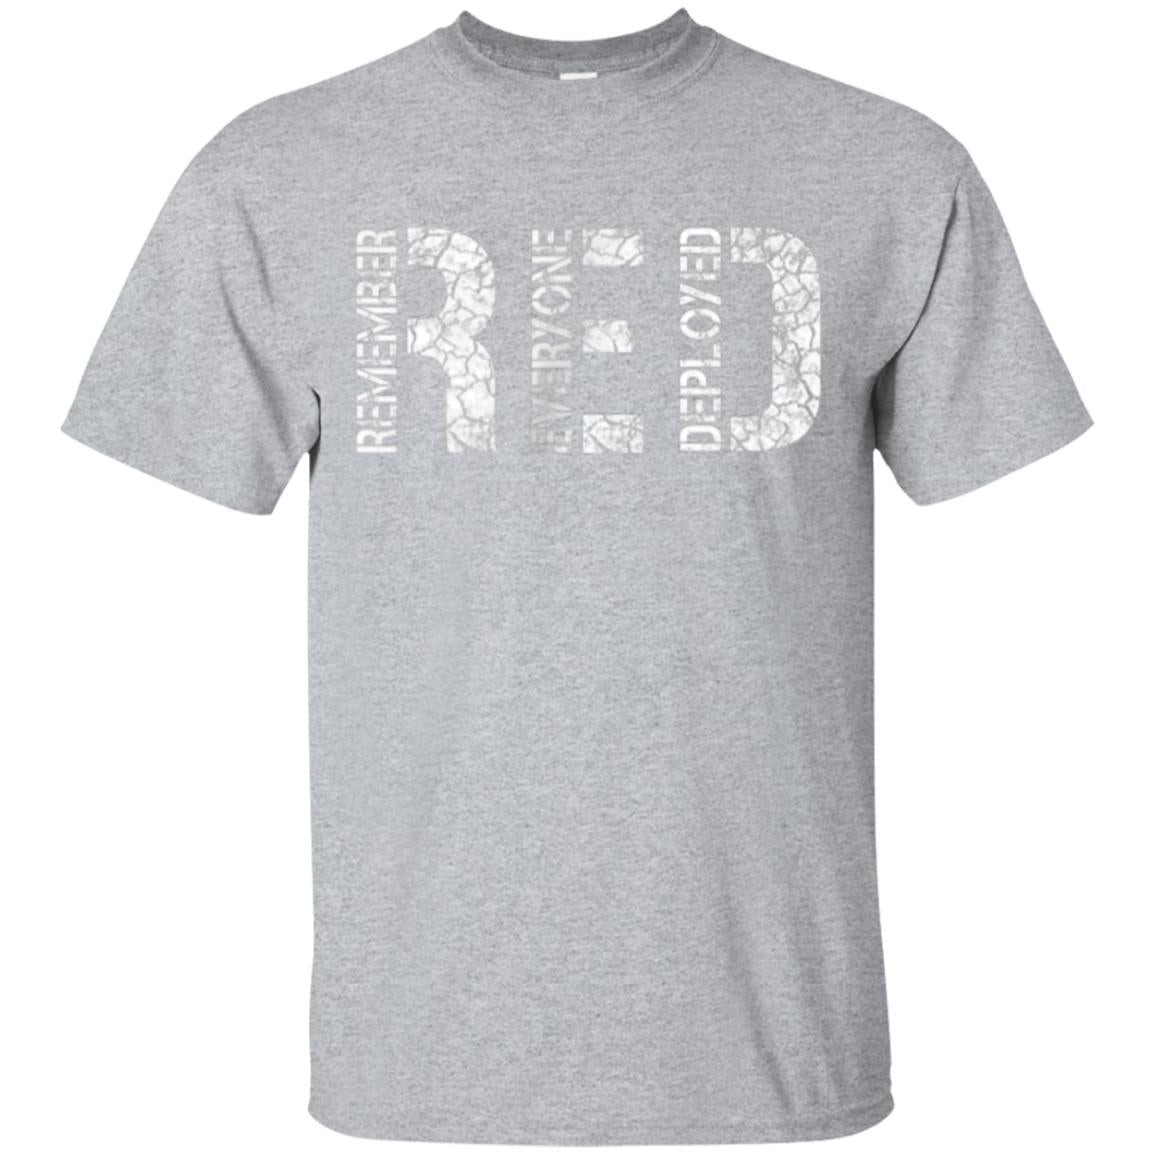 Red Friday Military Shirts, Remember Everyone Deployed Shirt 99promocode